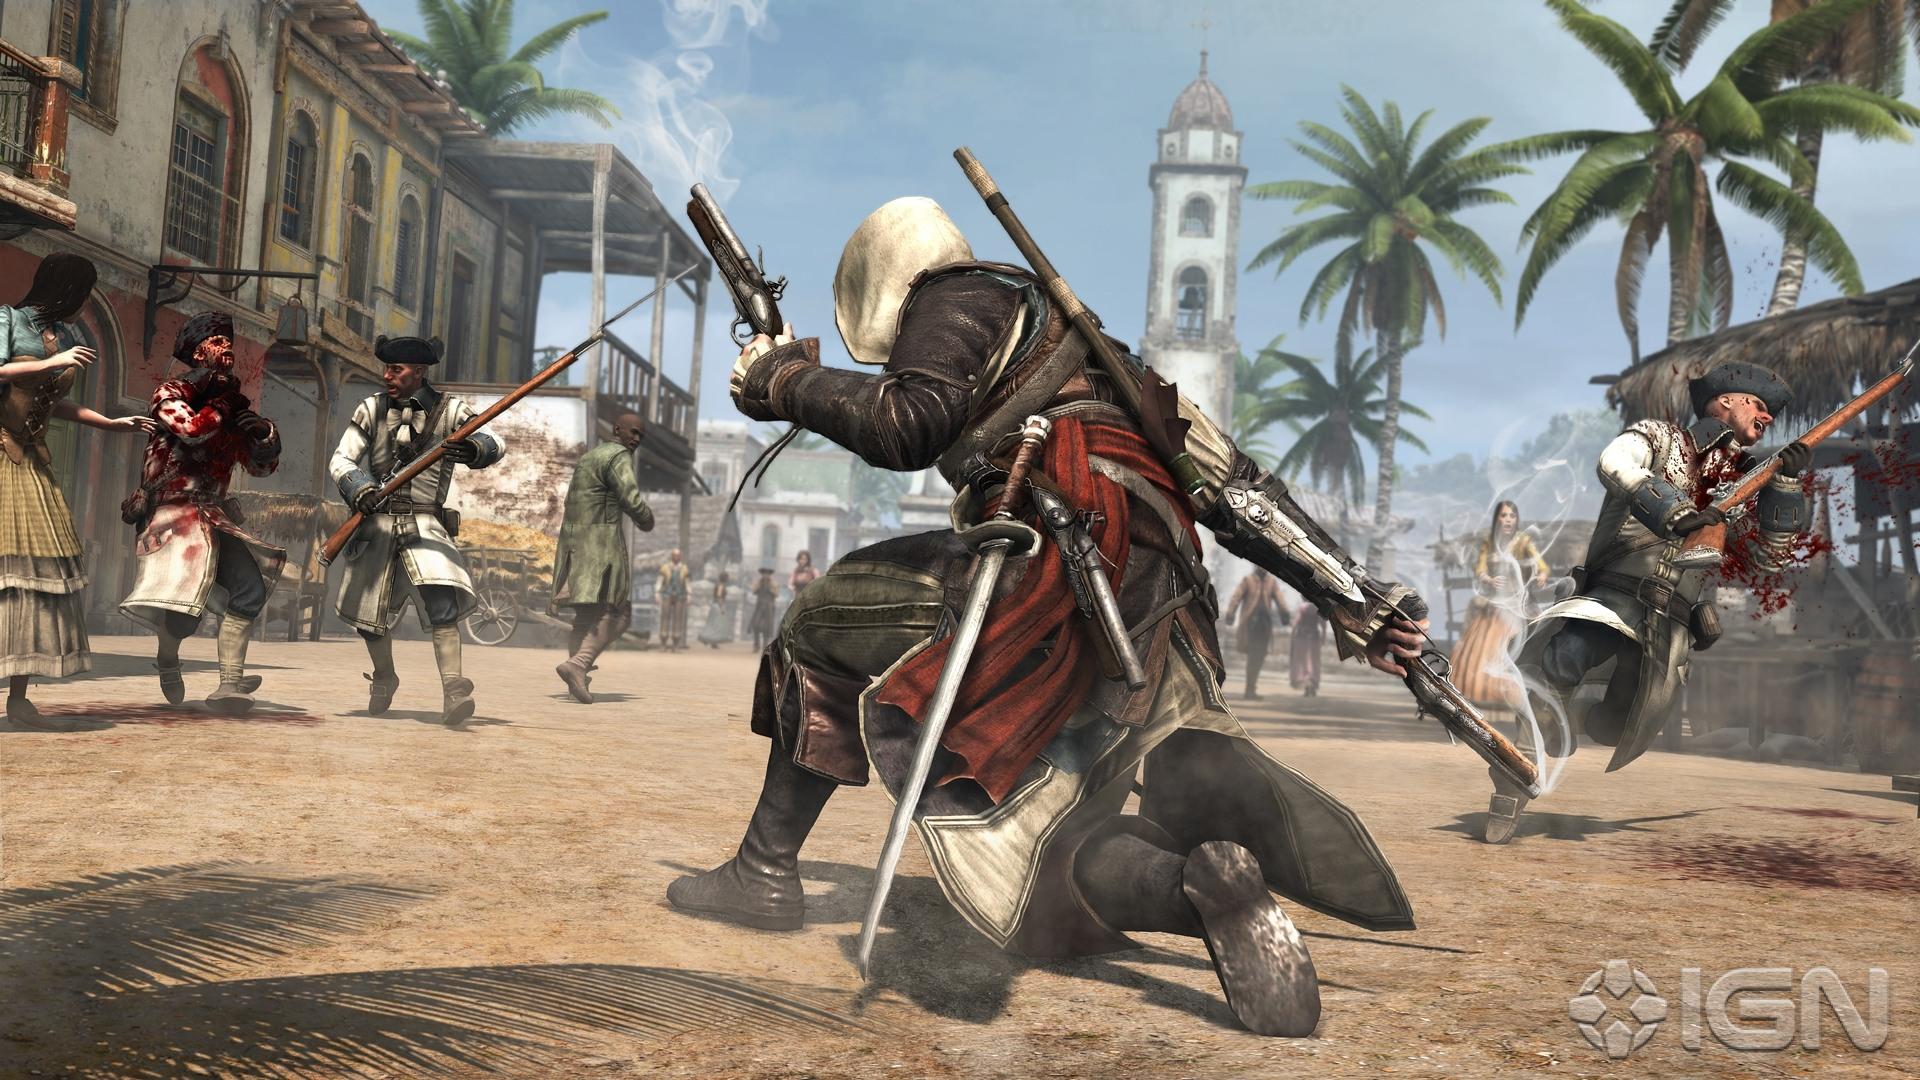 download Ac4 Black Flag Wallpaper Images amp Pictures Becuo 1920x1080